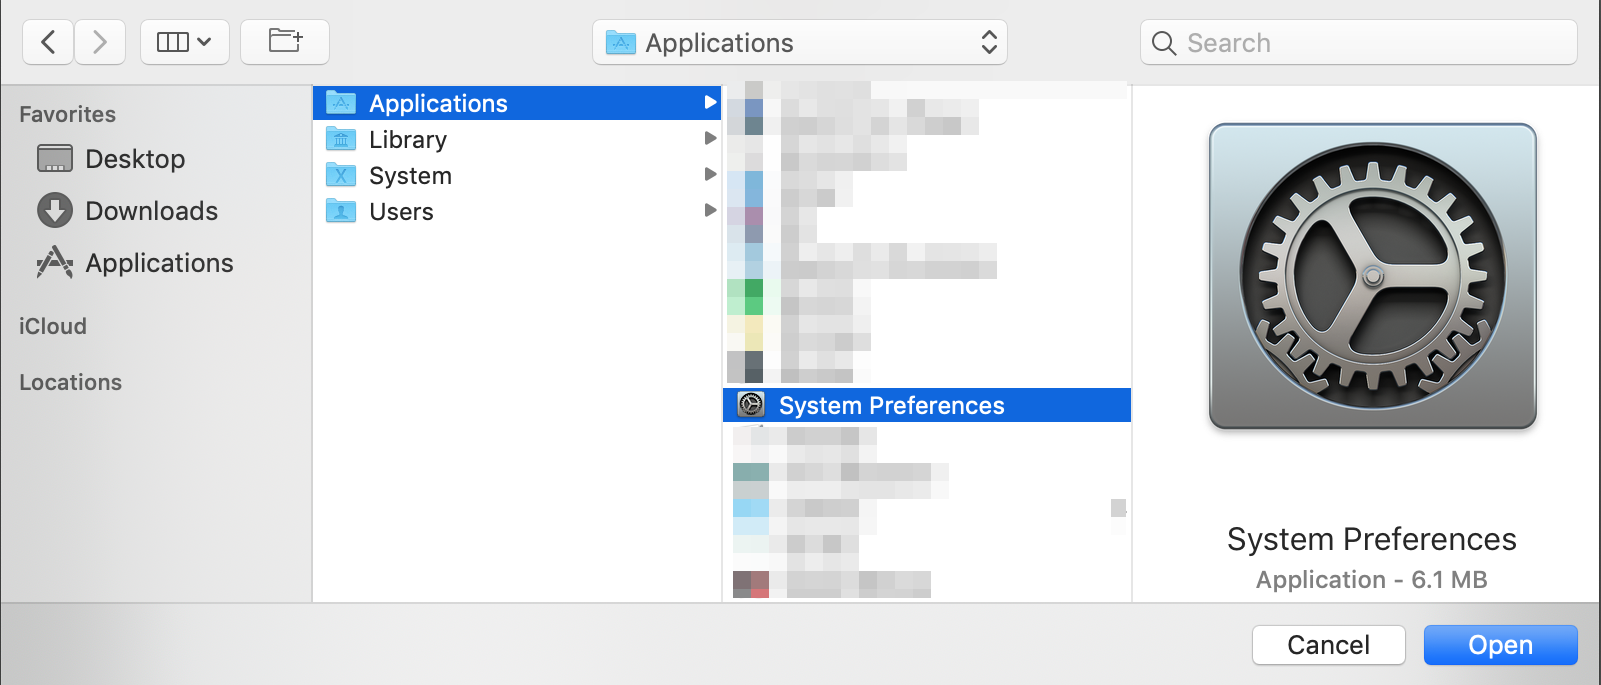 macOS Full Disk Access: Click +, select System Preferences, and click Open